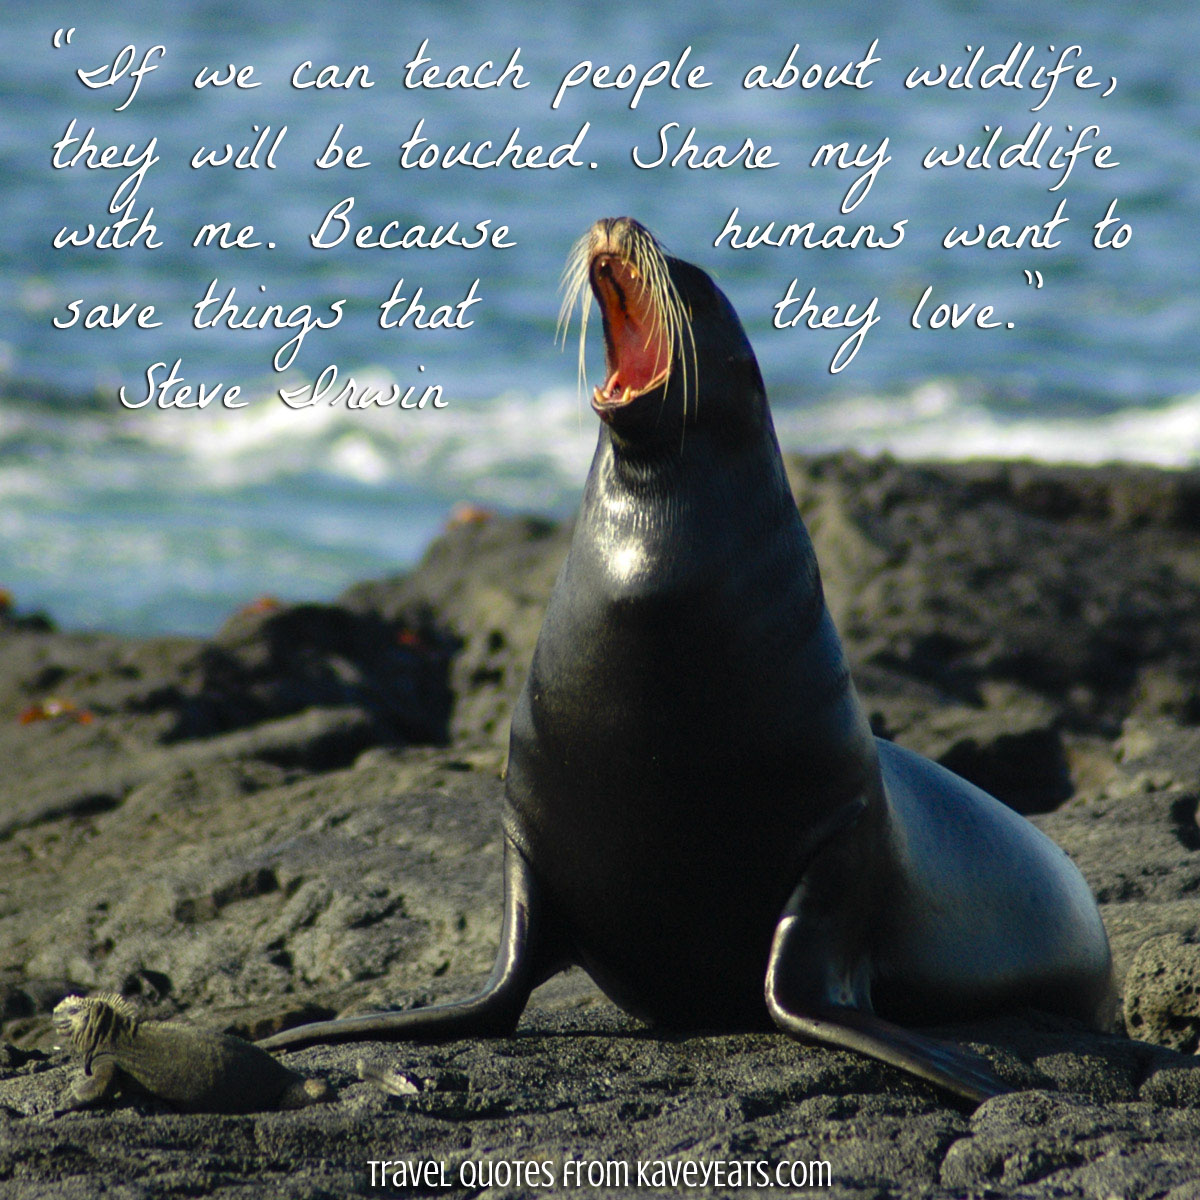 "Sea lion on rocky shore in Galapagos Islands - ""If we can teach people about wildlife, they will be touched. Share my wildlife with me. Because humans want to save things that they love."" ~ Steve Irwin"